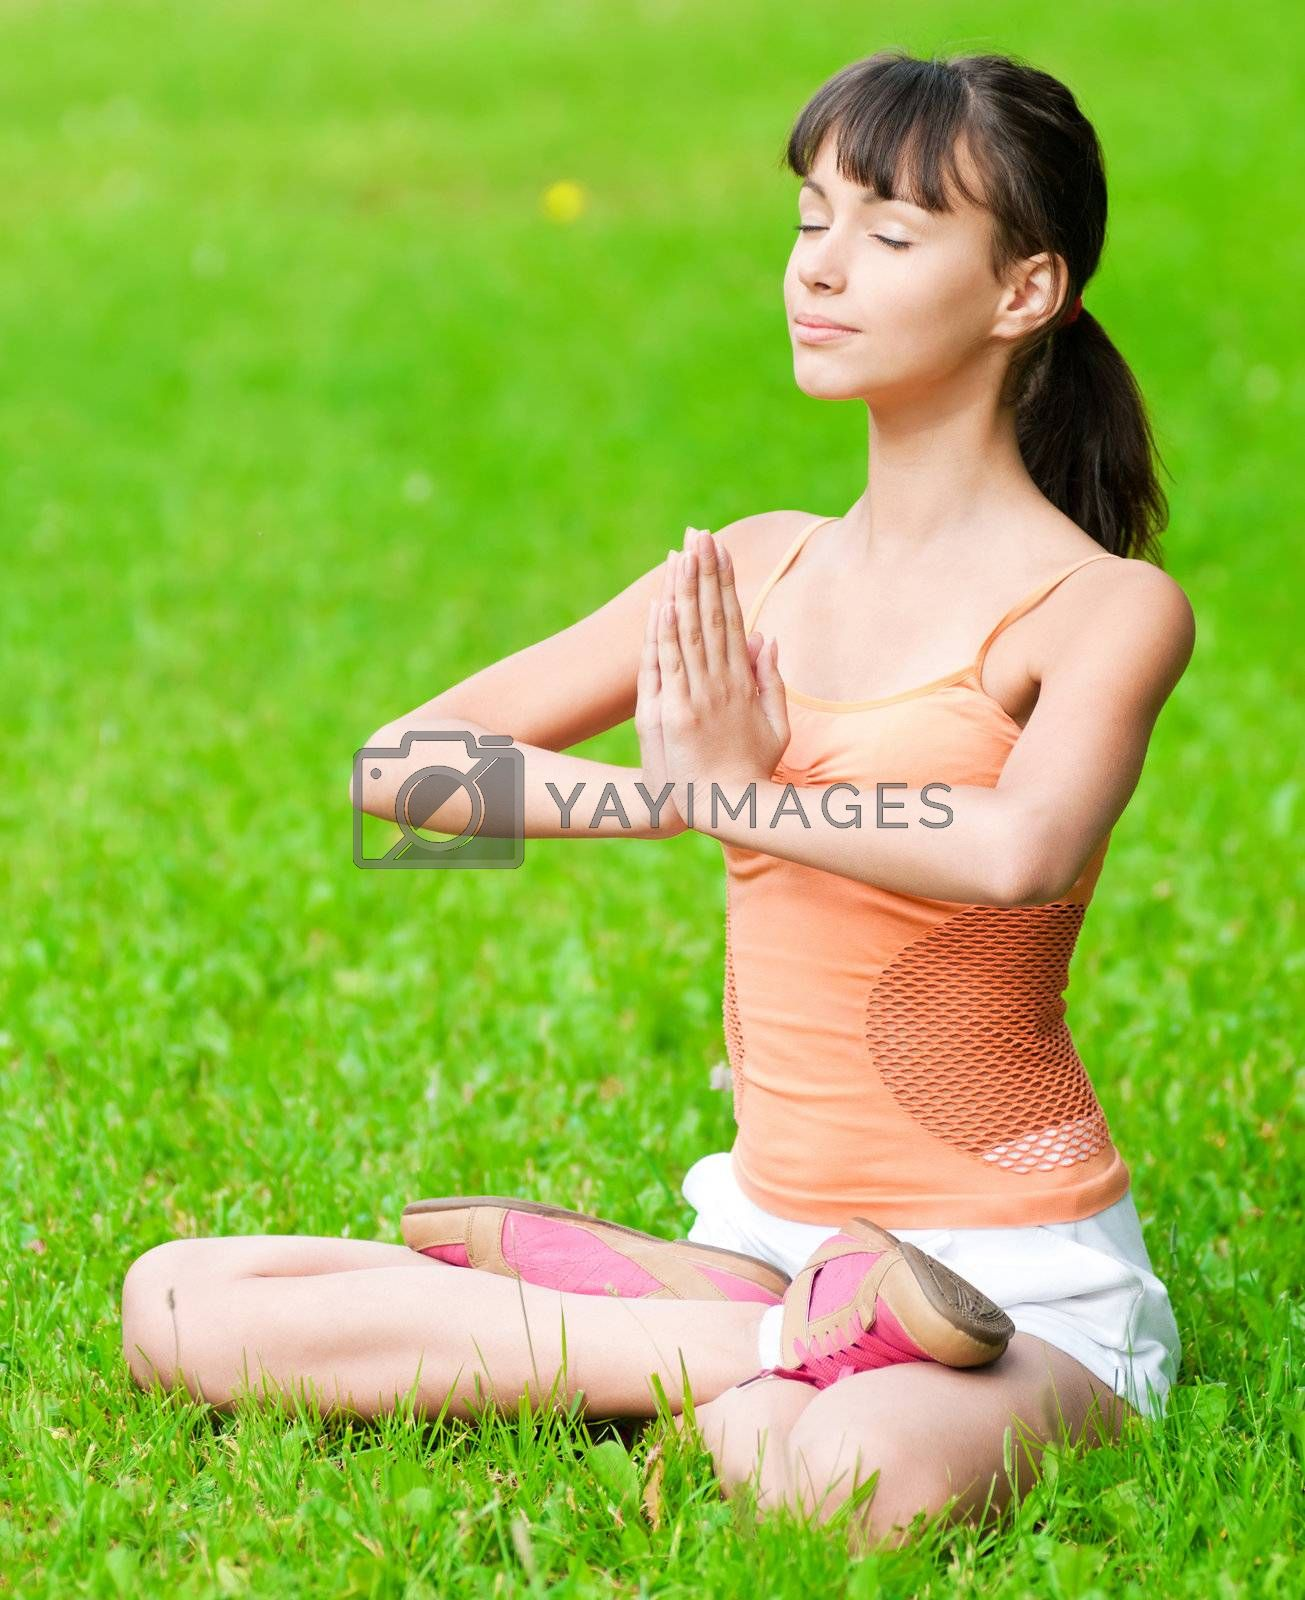 Beautiful teenage girl doing stretching exercise on green grass at park. Yoga